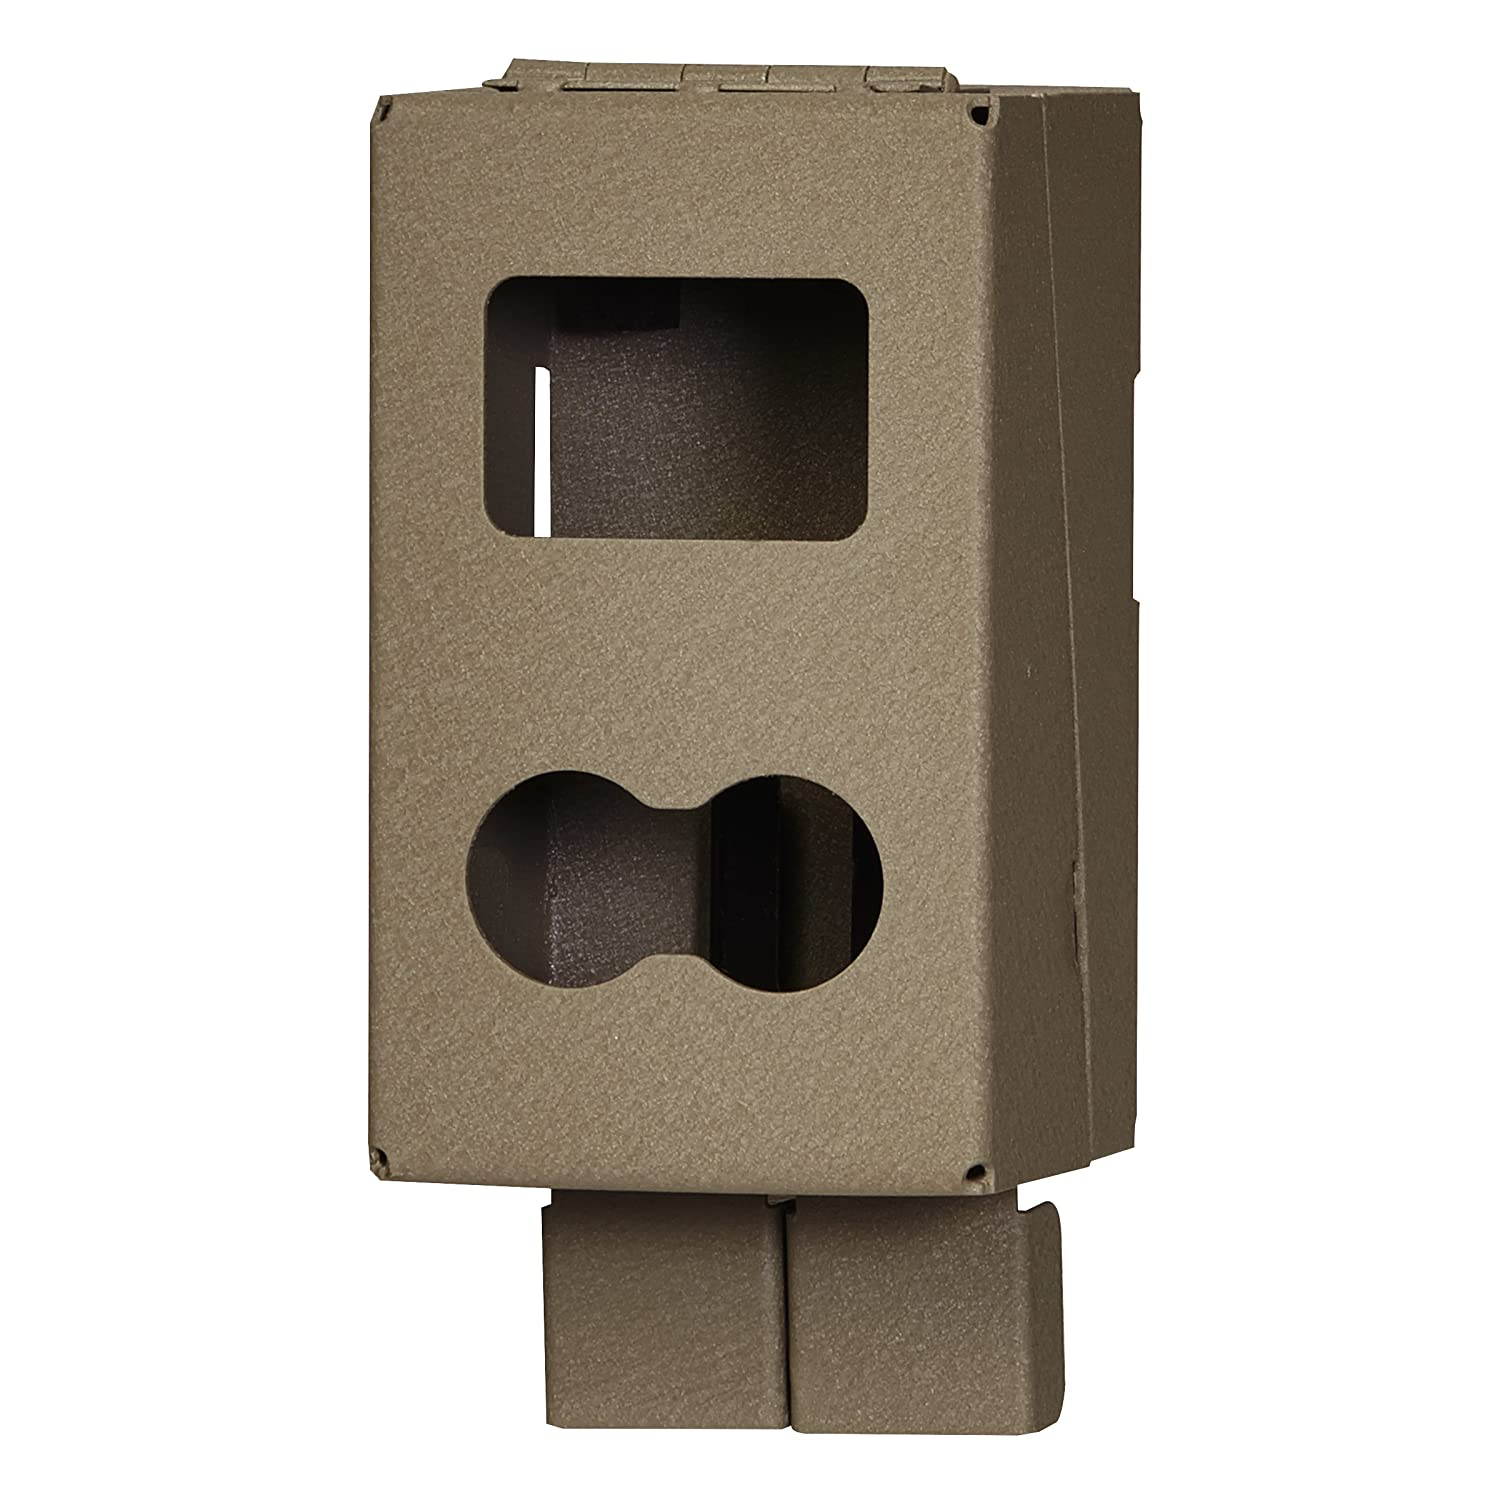 Cuddeback Cuddesafe for C E Series Camera